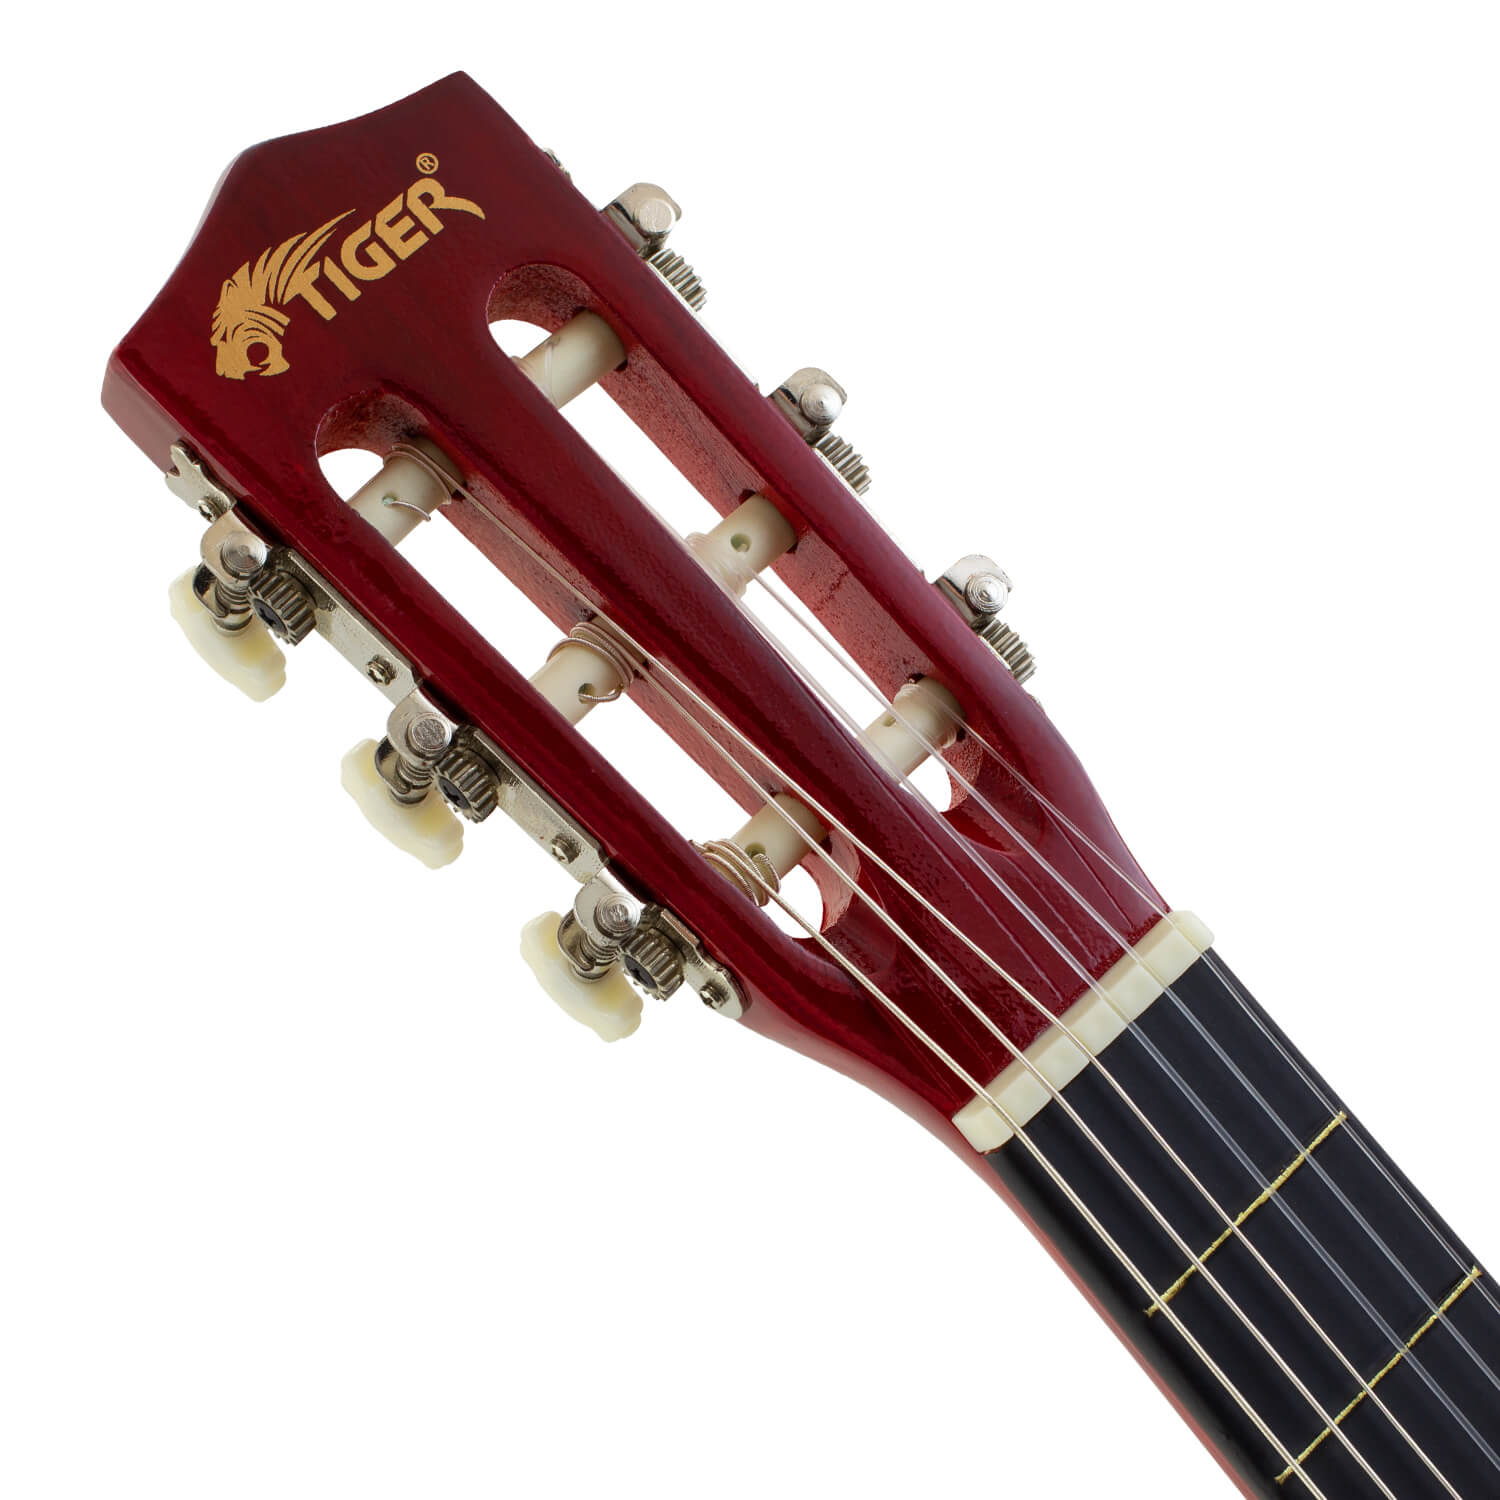 Tiger-Childrens-1-2-Size-Classical-Guitar-Package-Red-amp-Blue